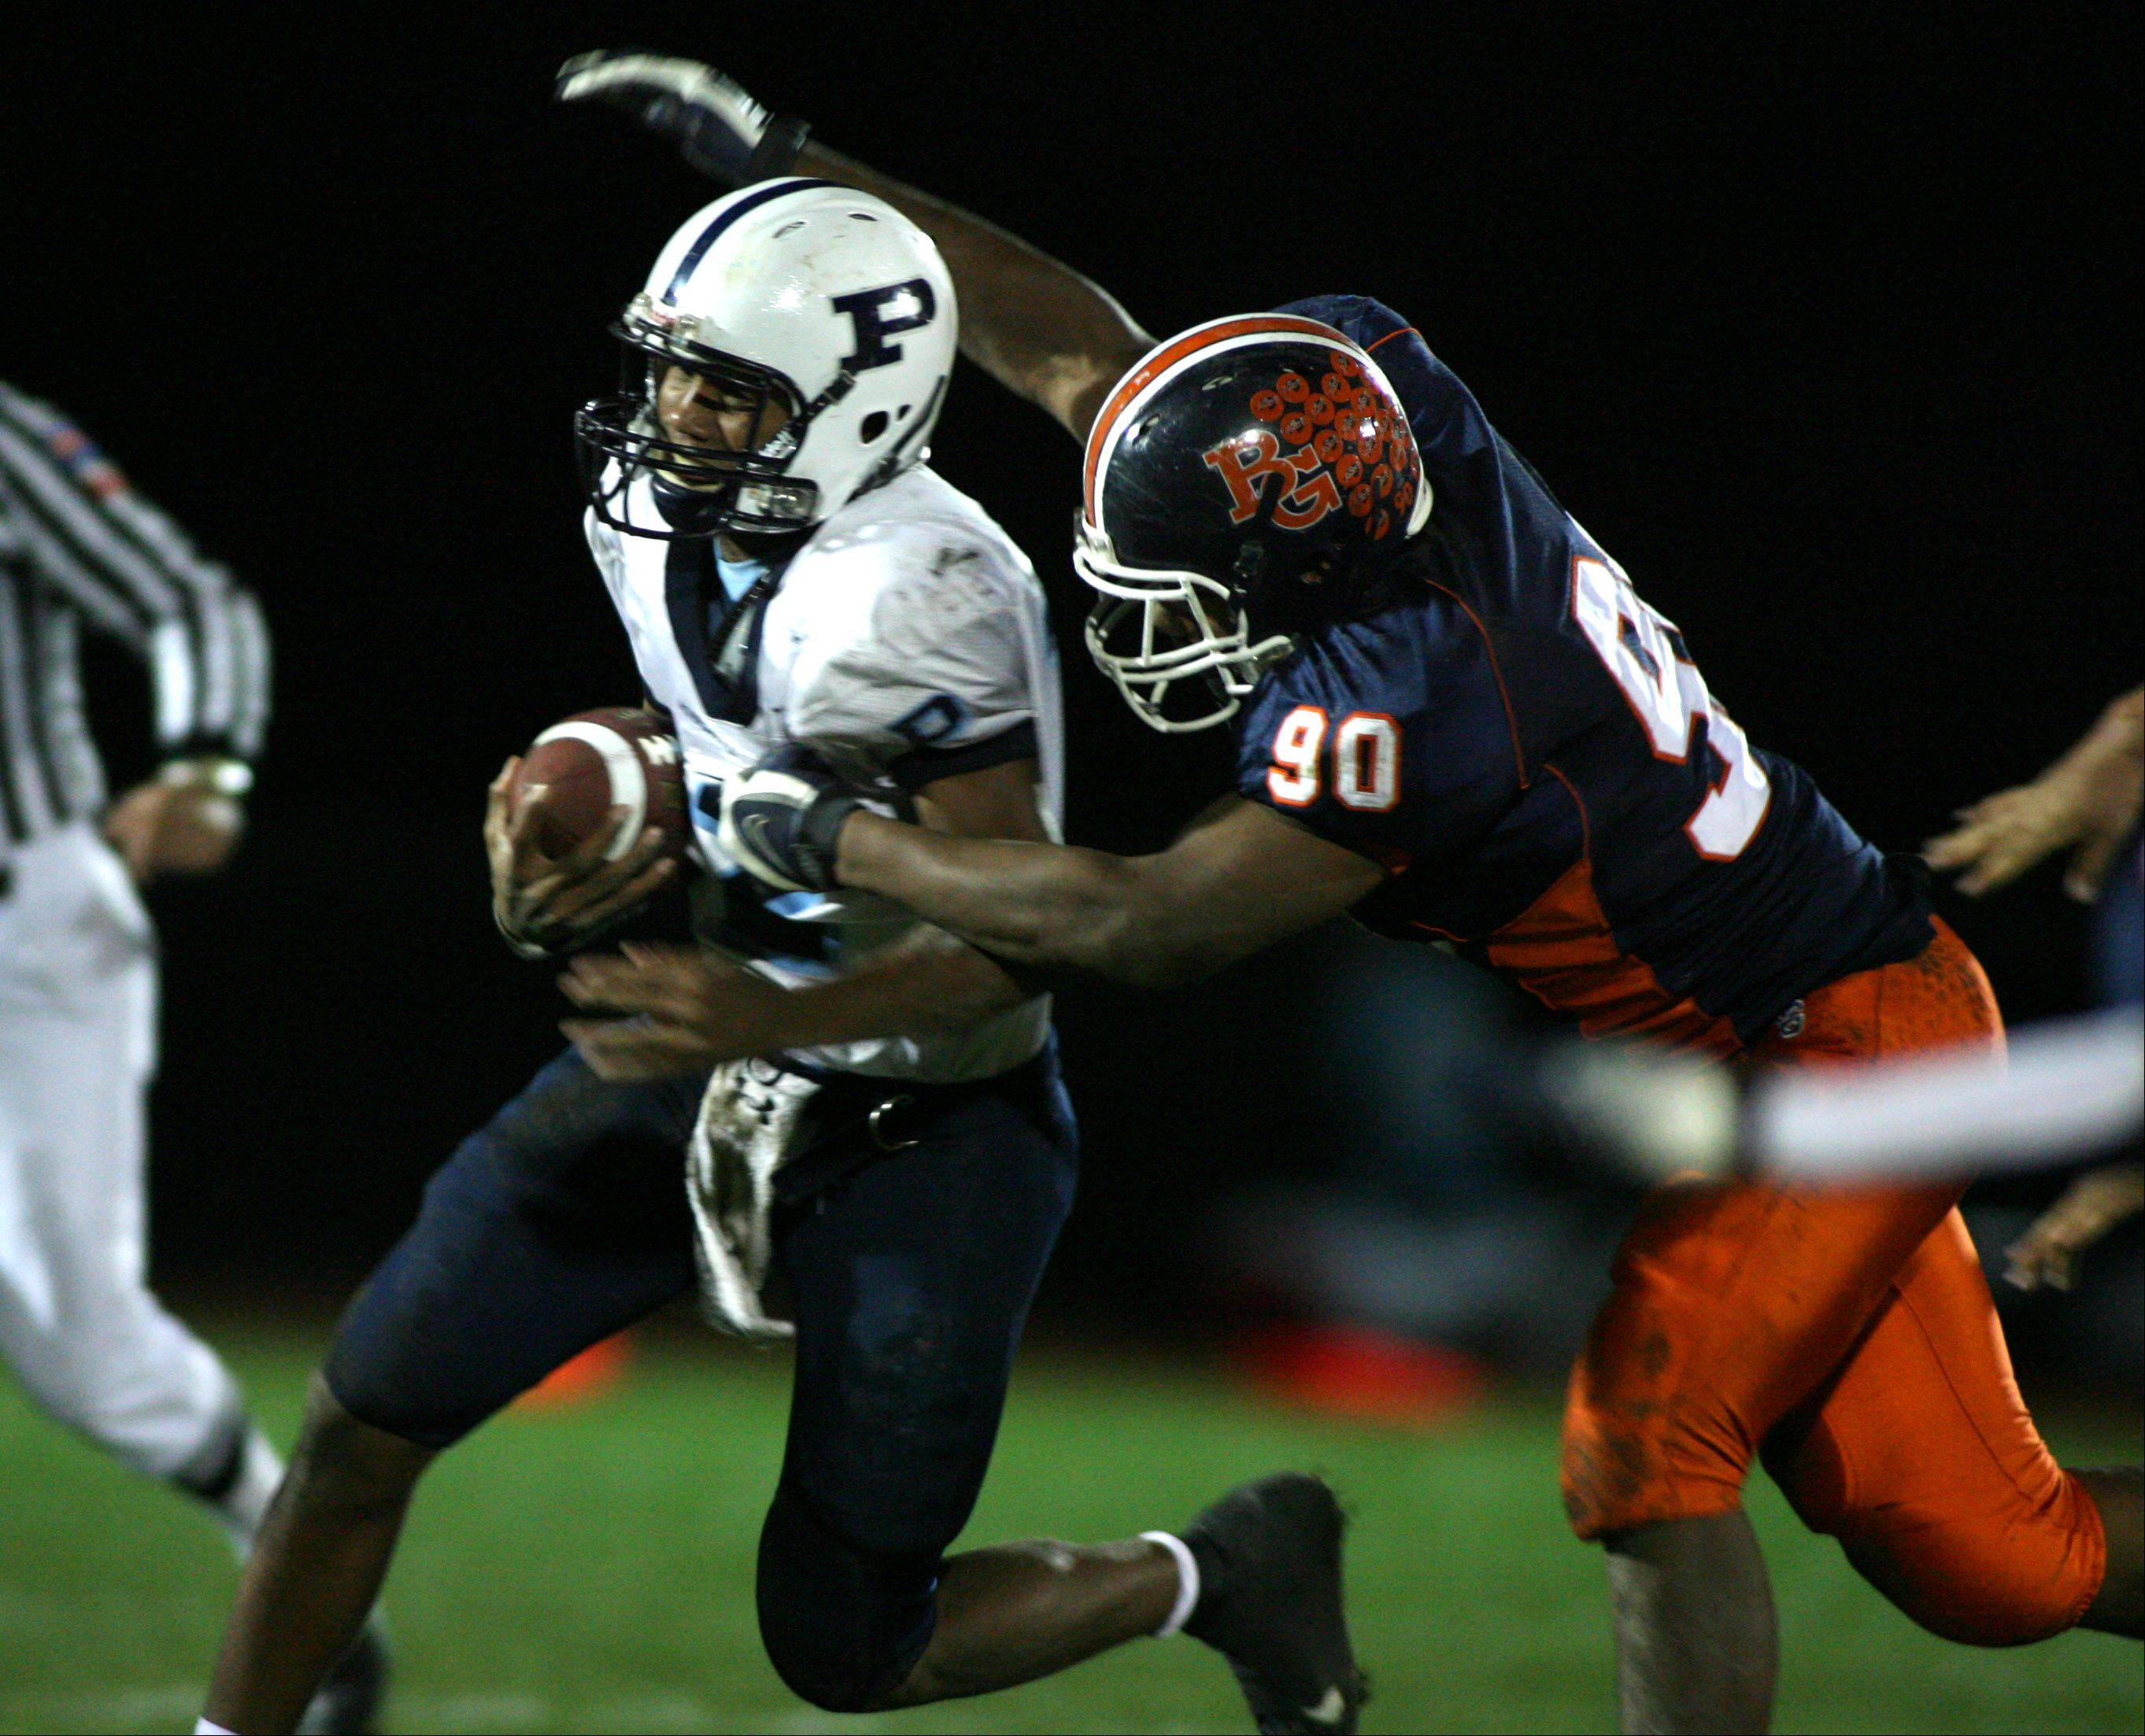 Former Buffalo Grove defensive star Alan Baxter, right, brings down former Prospect quarterback Miles Osei. Both players were recruited by NIU, but Baxter stayed and became a standout defensive end while Osei chose to attend Illinois, where he plays wide receiver.